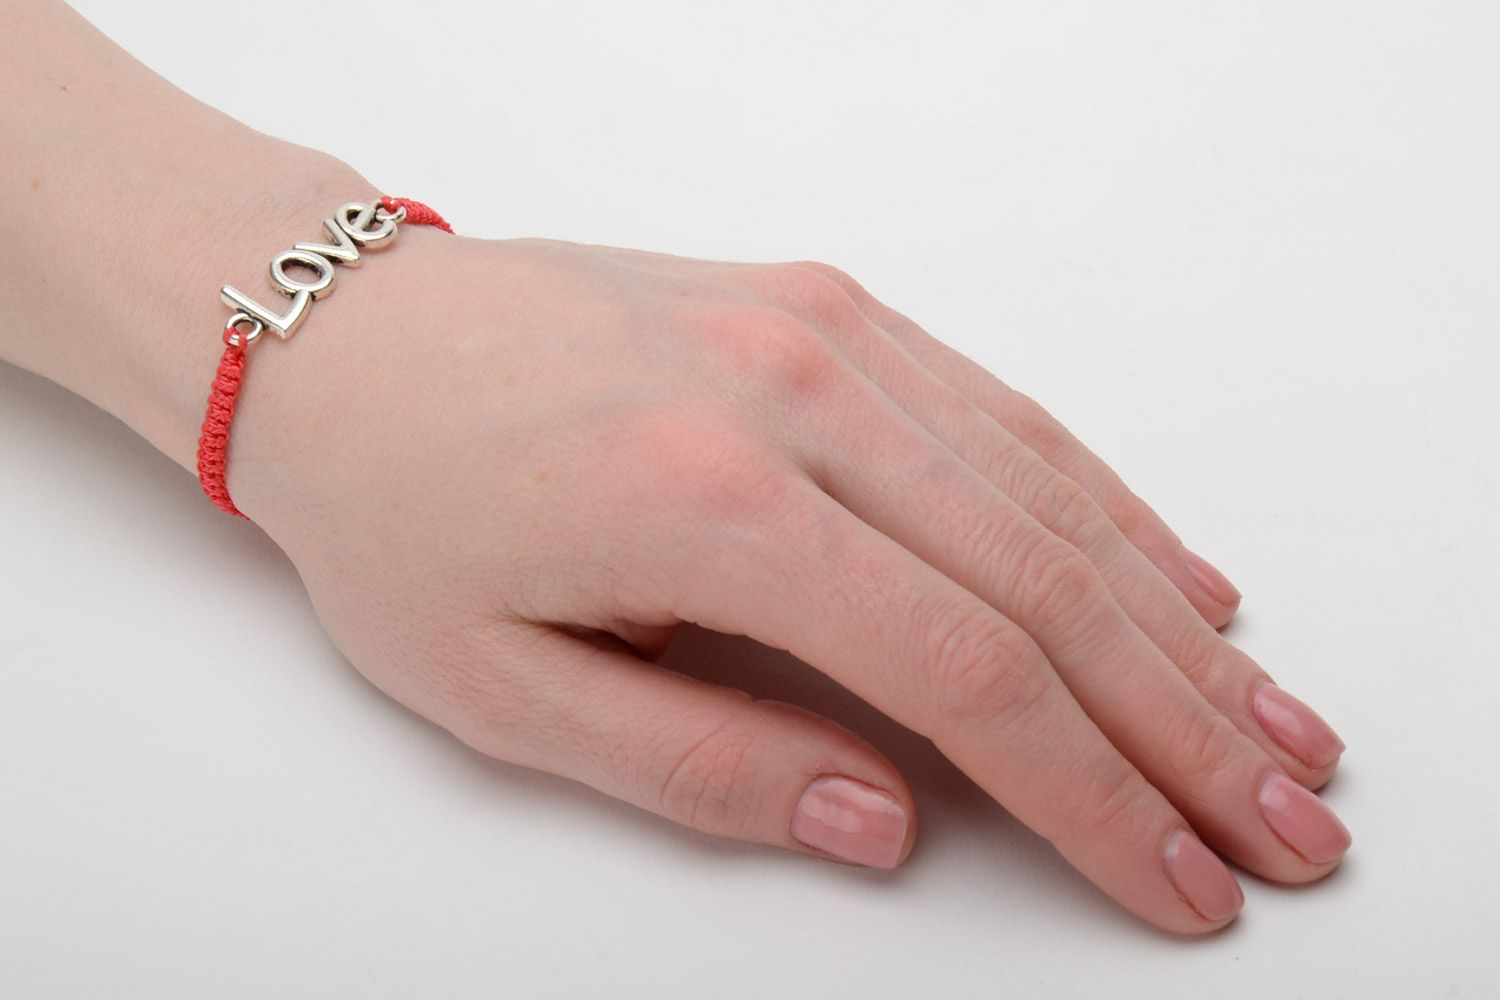 Handmade women's woven cord bracelet of red color with metal charm lettering photo 2